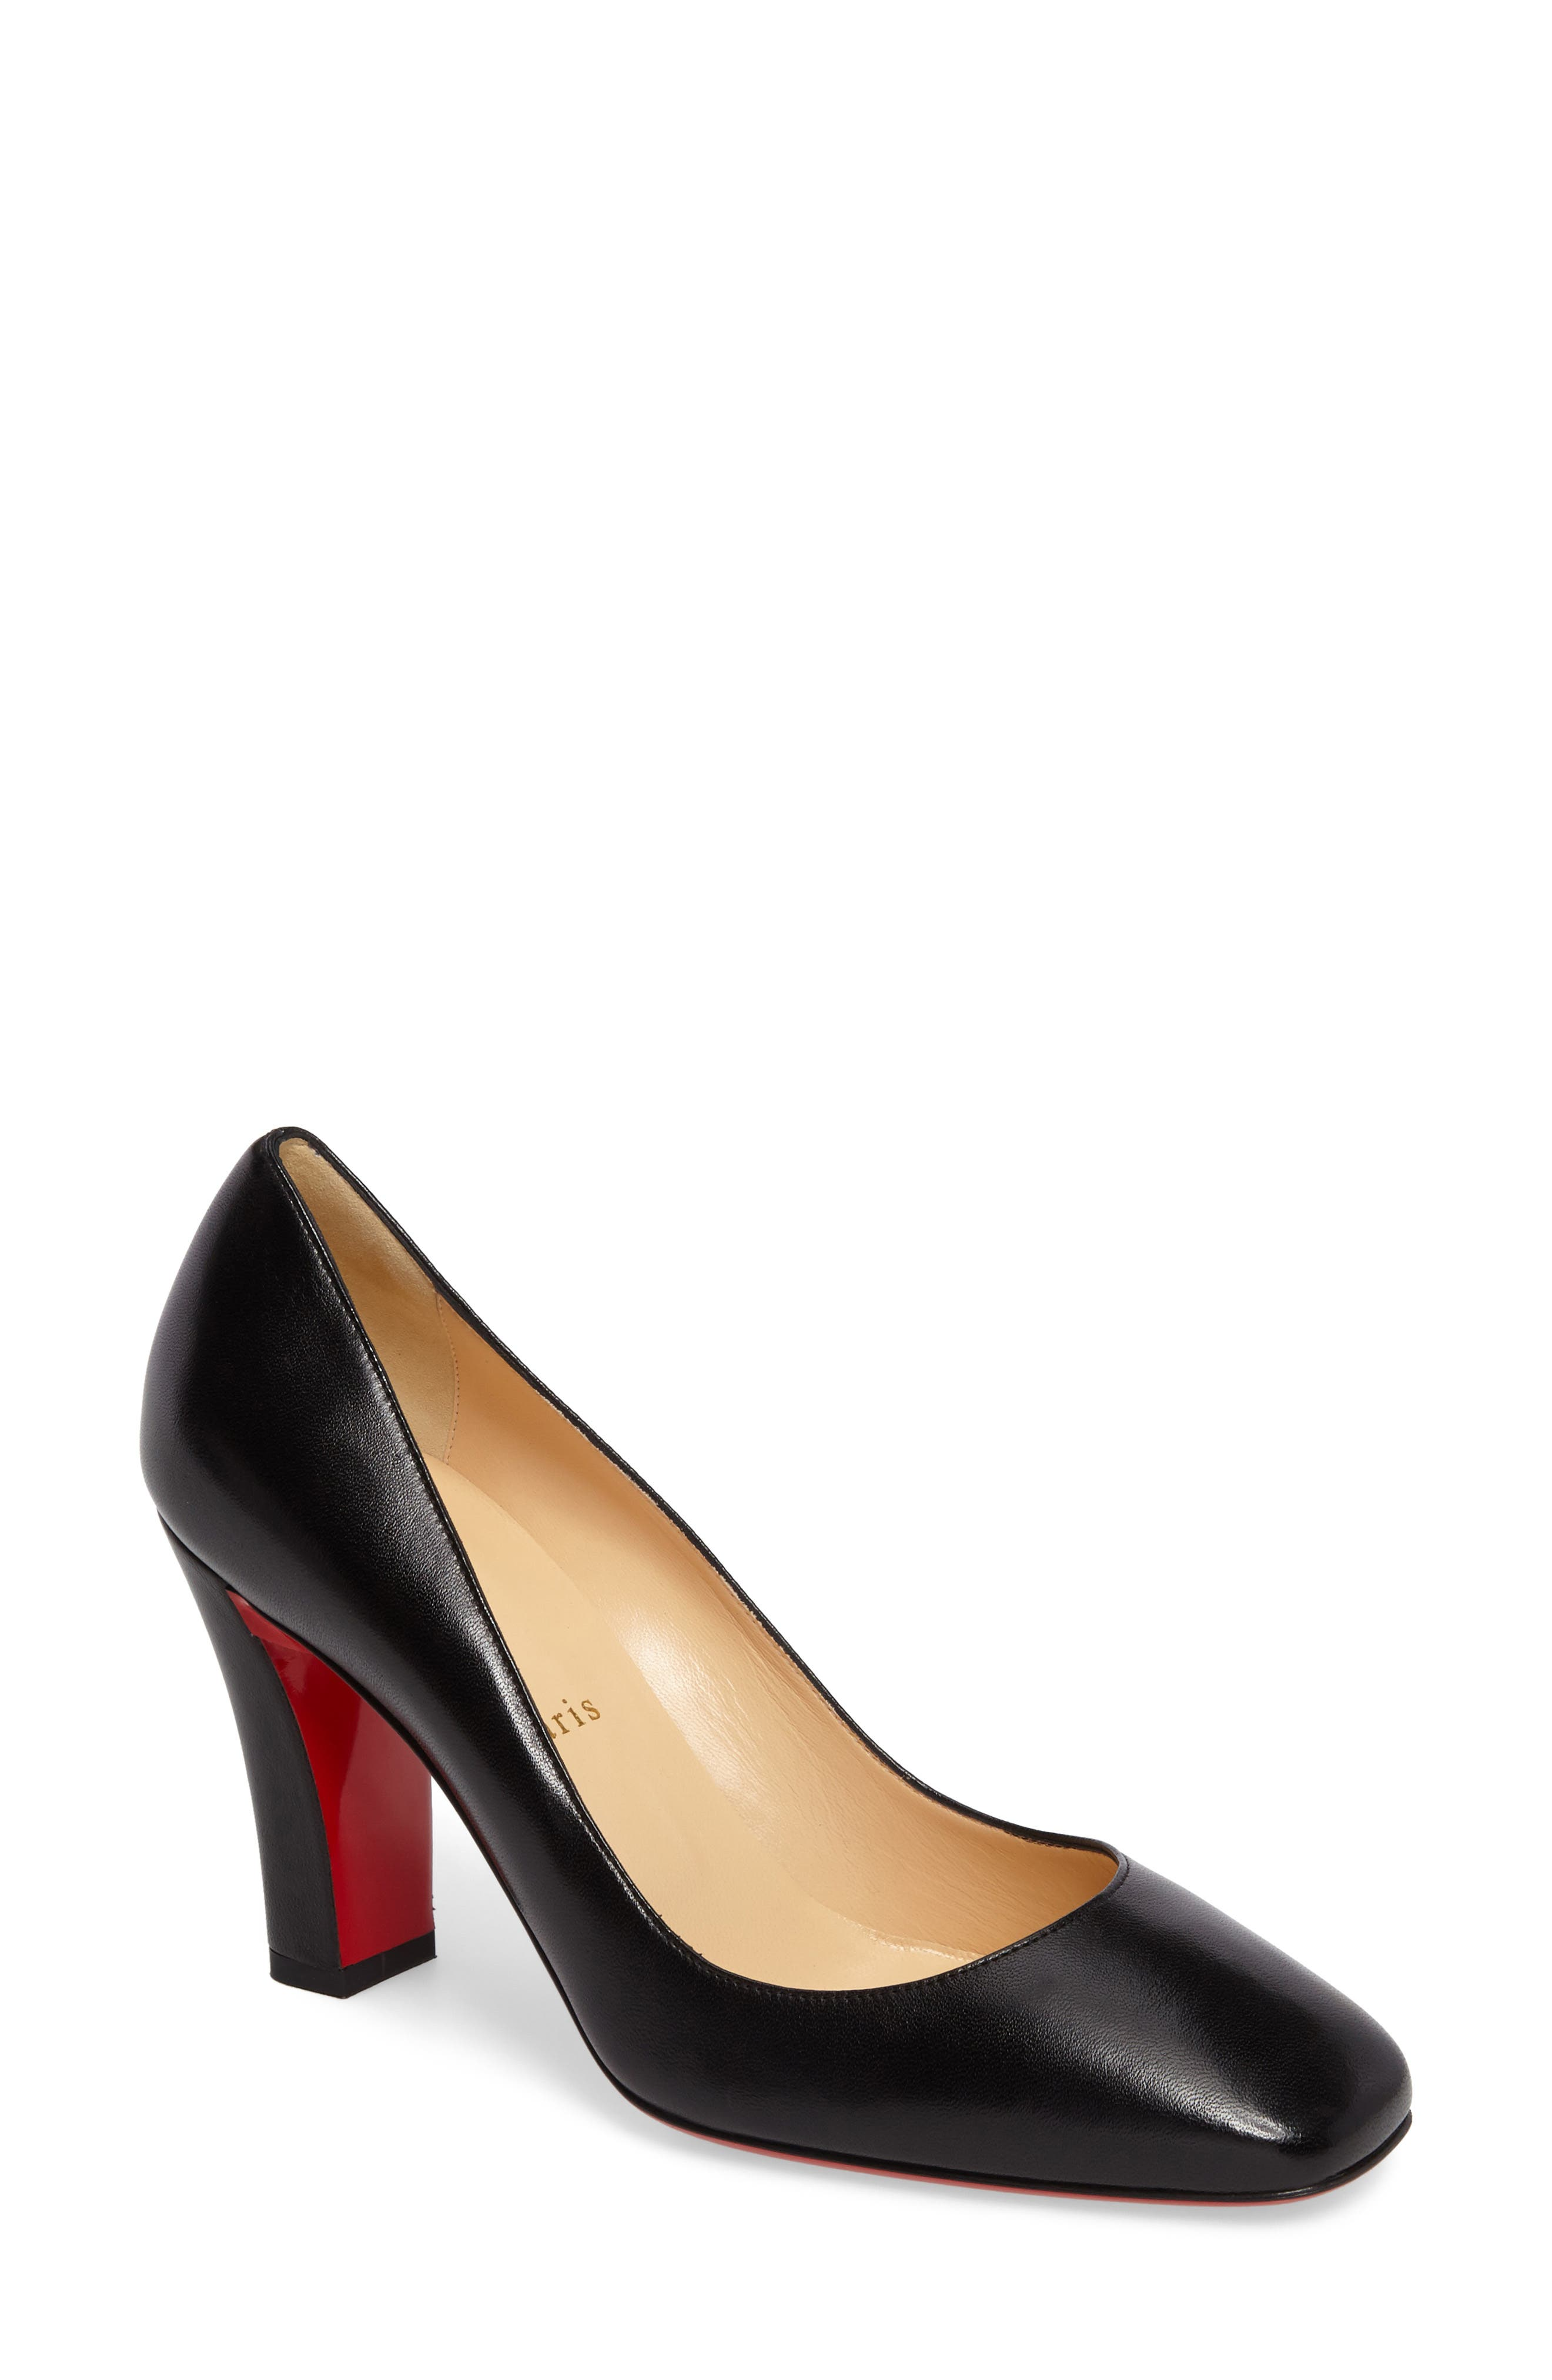 Christian Louboutin Viva Pump (Women)